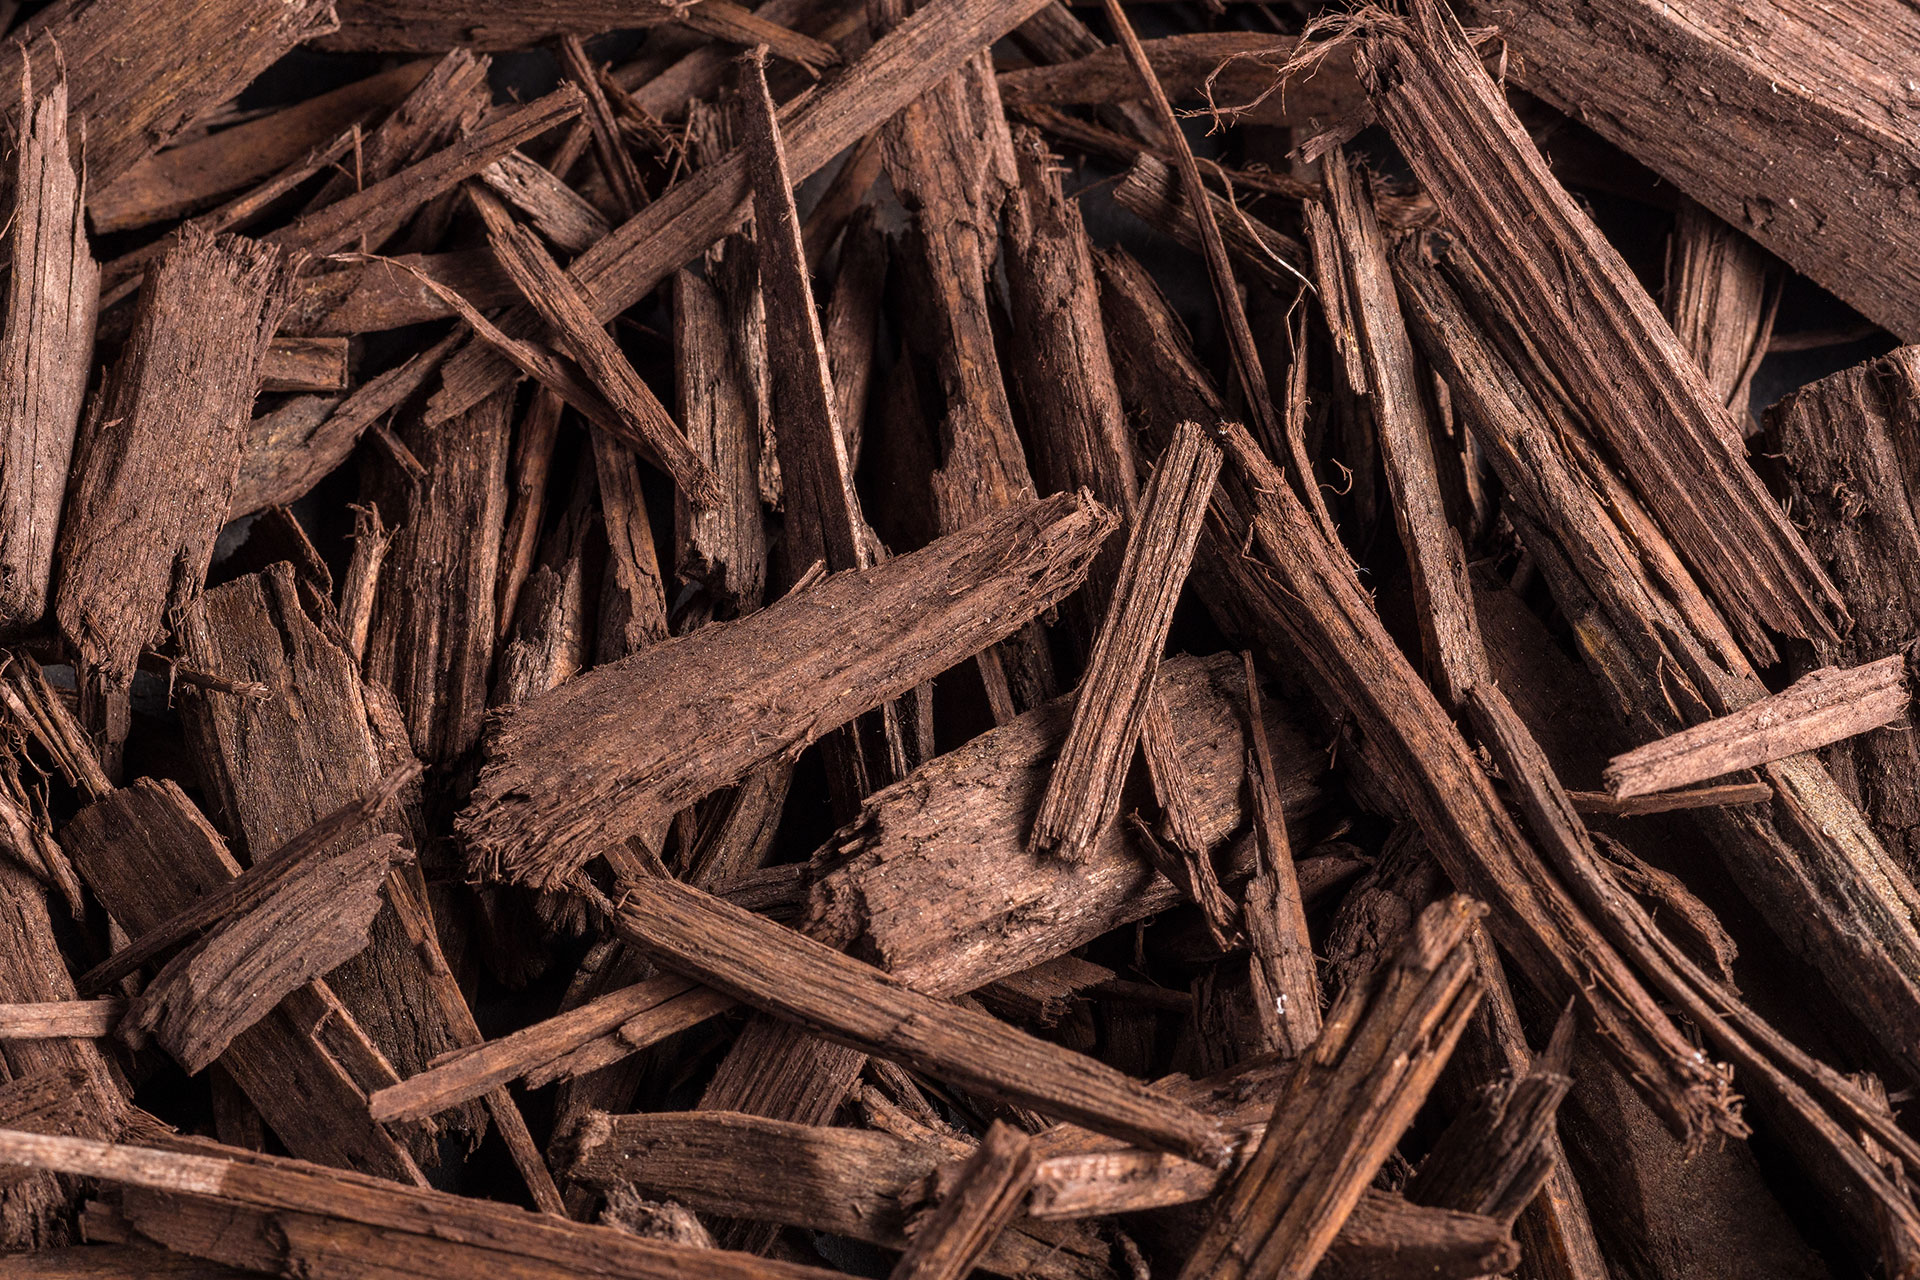 Landscaping Ground Covers: Brown Wood Chips